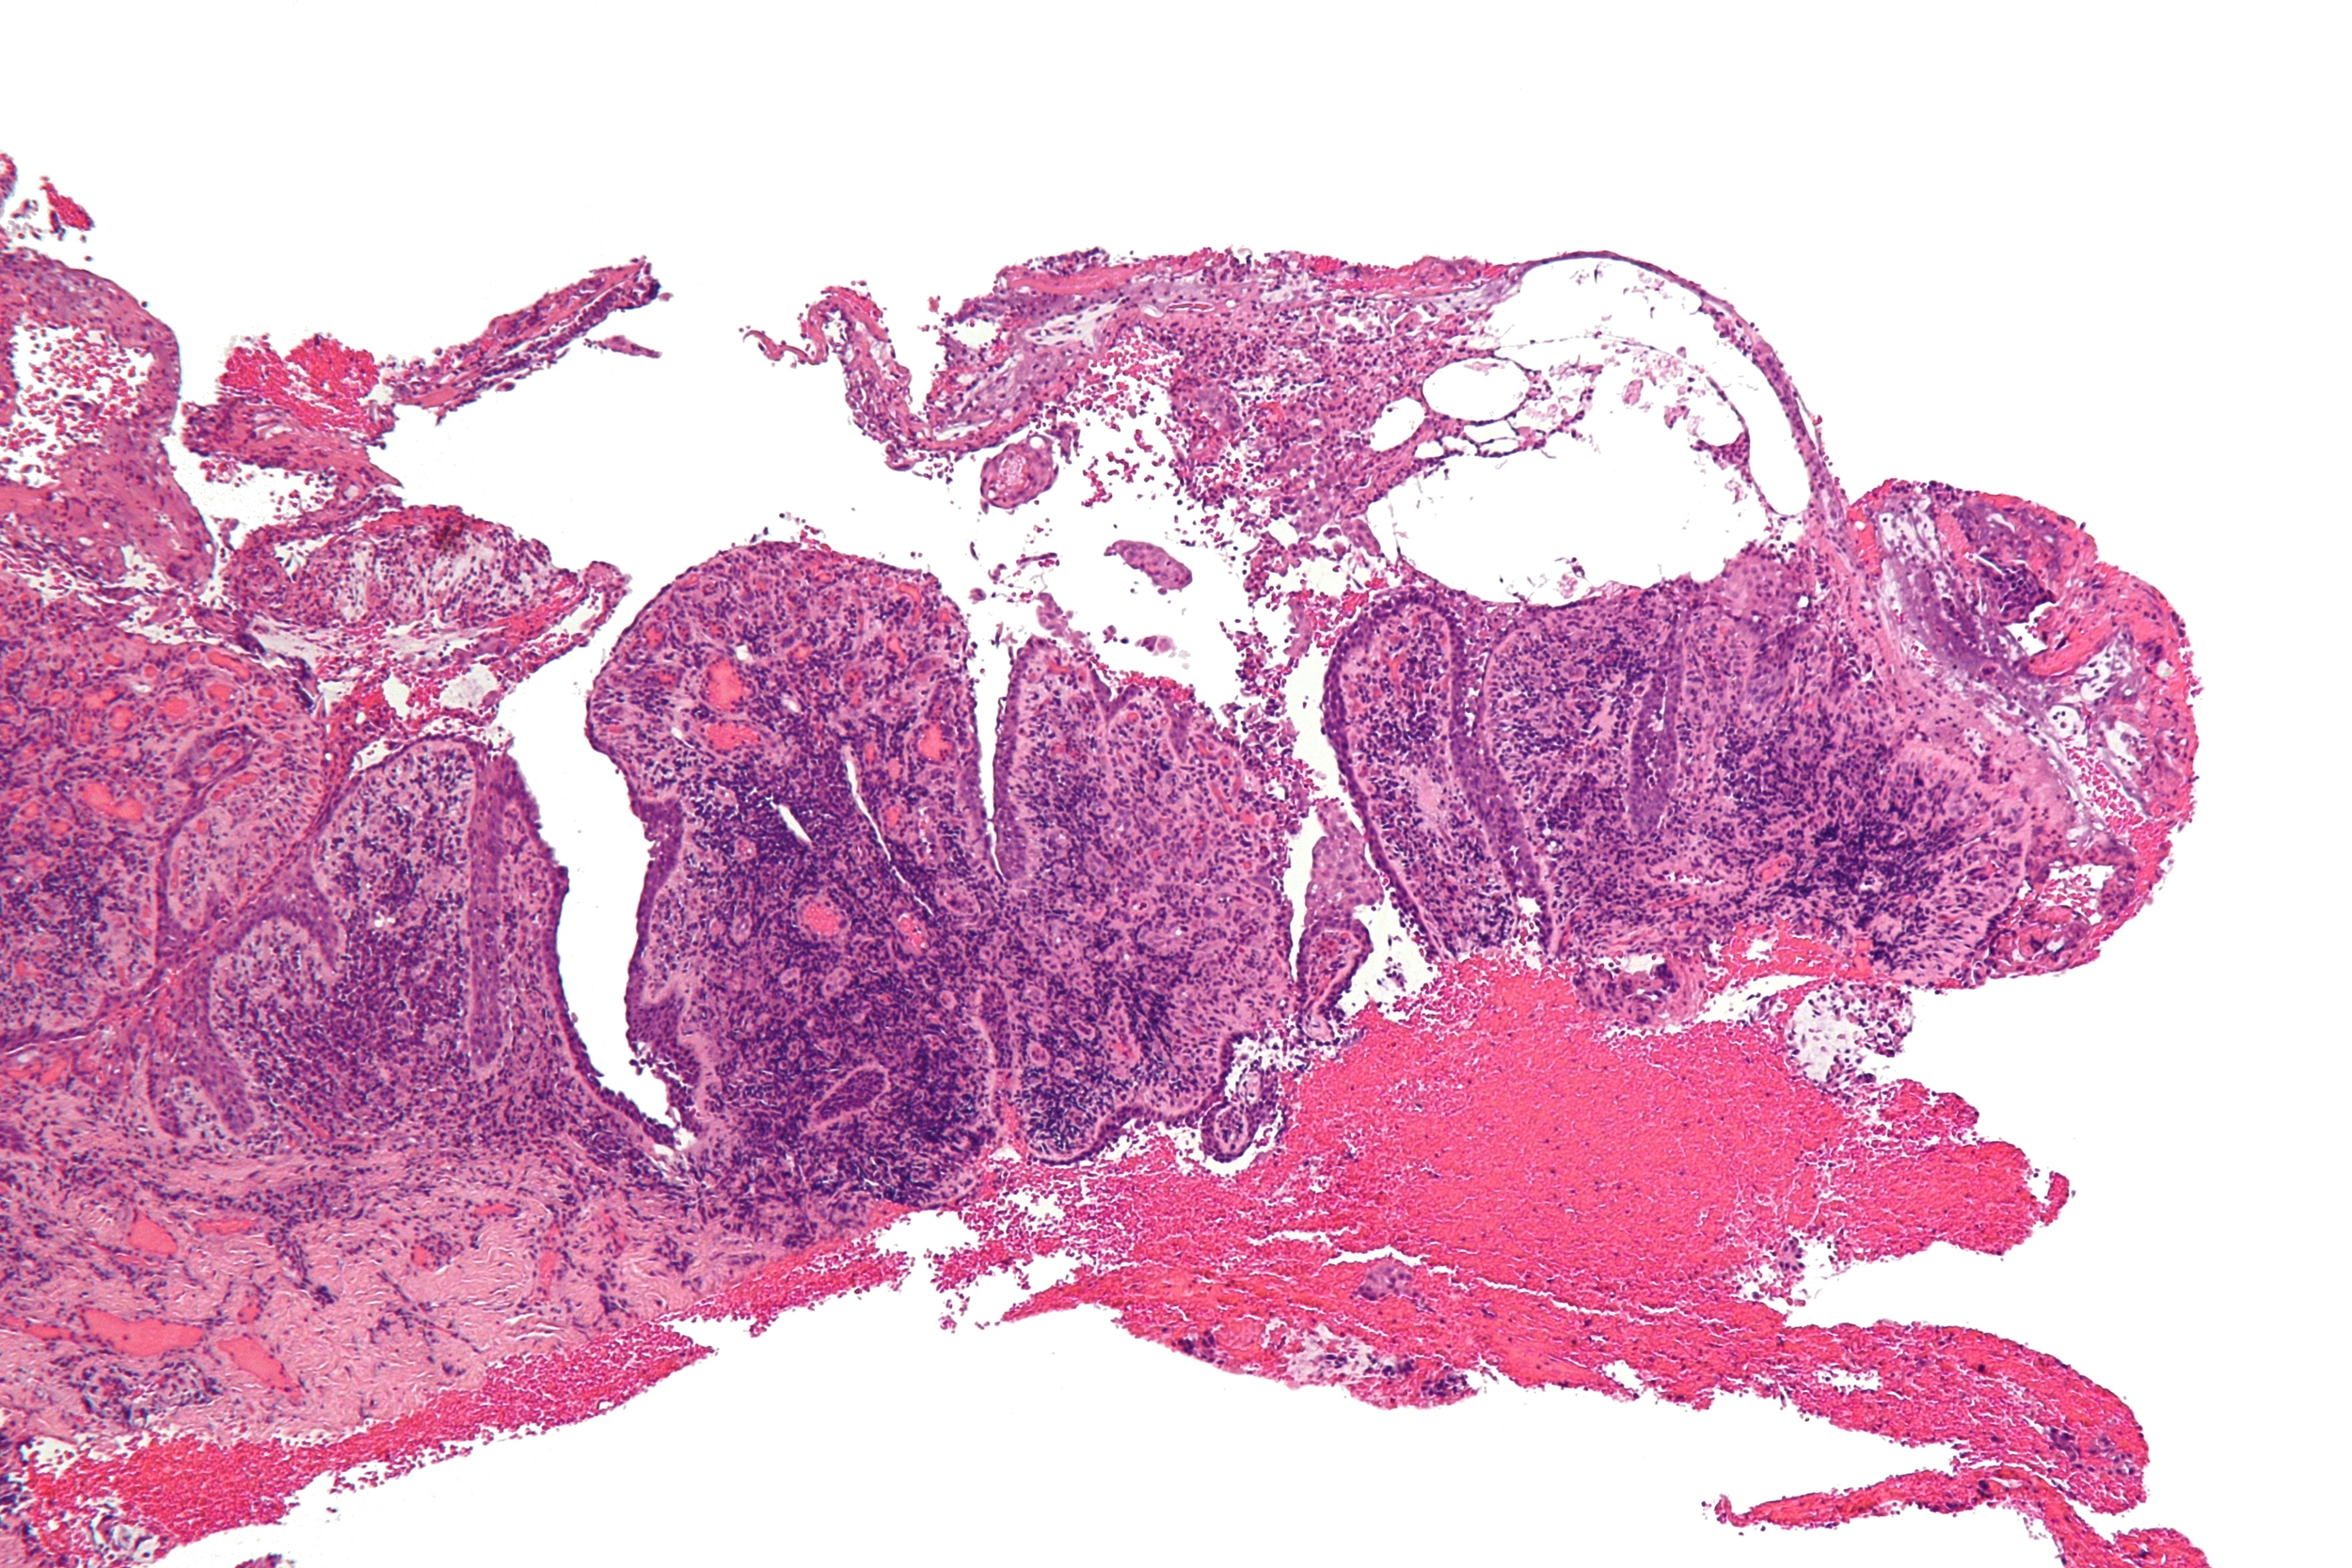 Magnification of a sample from a patient with pemphigus vulgaris